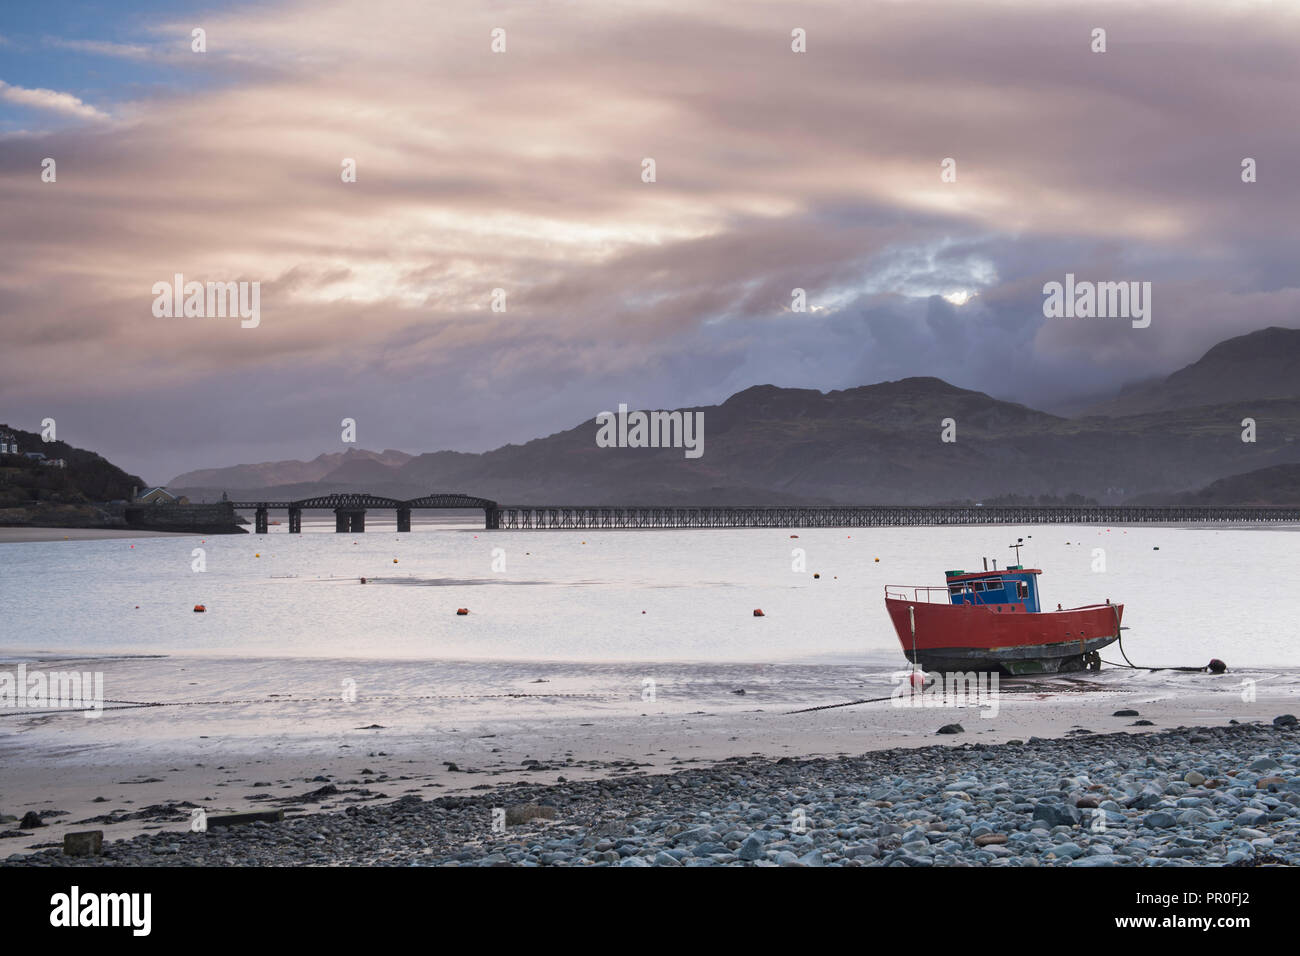 Fishing boat and Barmouth Bridge in Barmouth Harbour with Cader (Cadair) Mountains behind, Snowdonia National Park, North Wales, Wales, United Kingdom Stock Photo